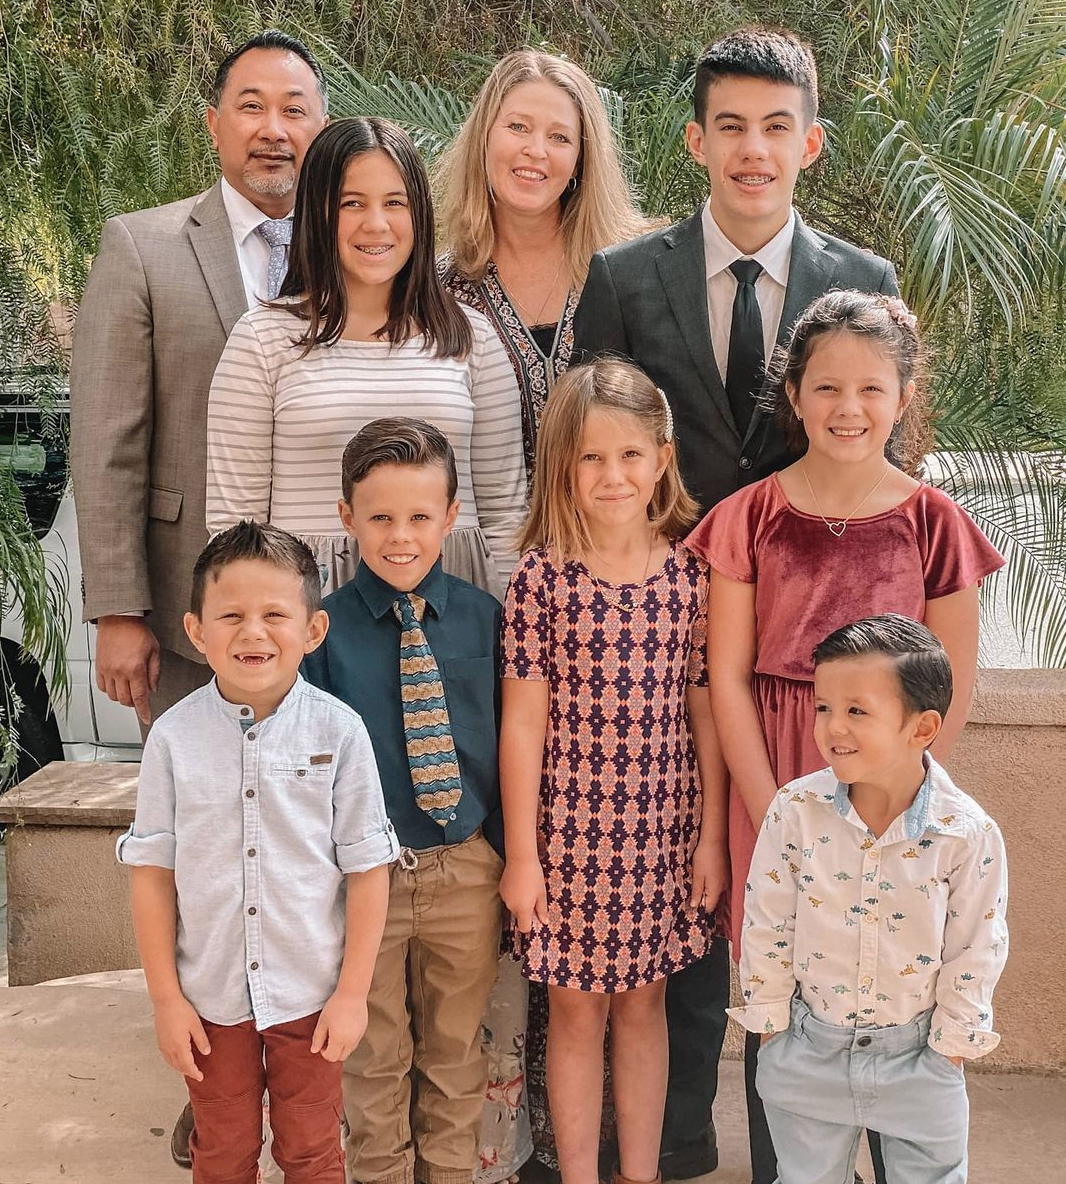 The family all dressed up for church